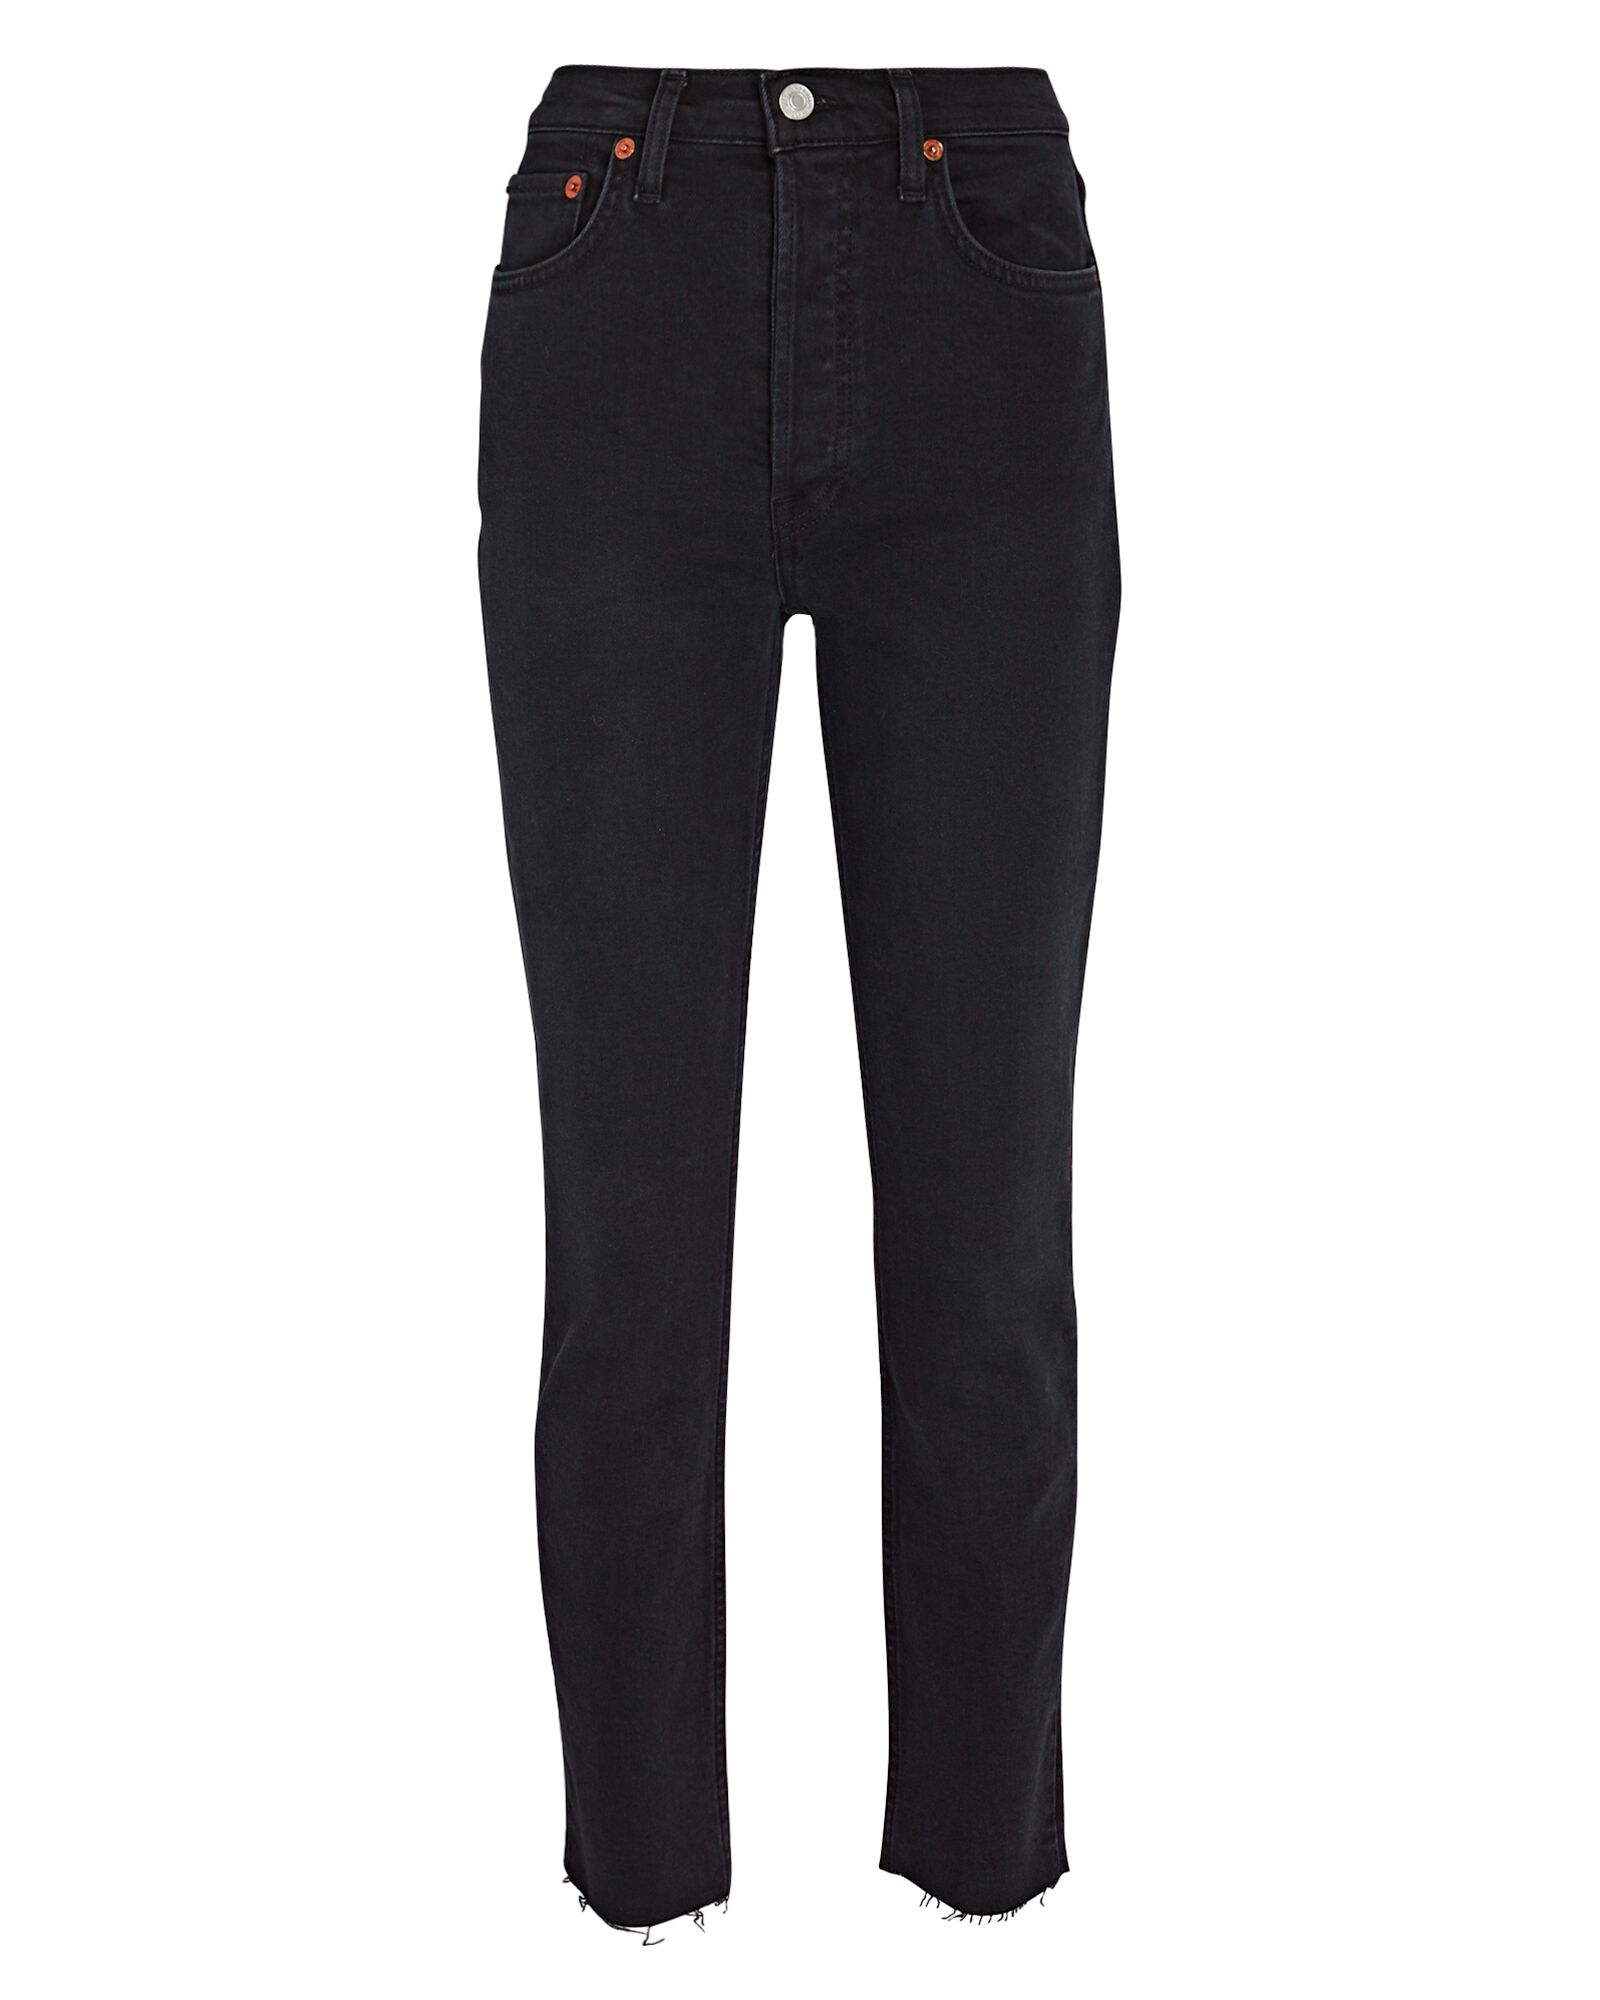 High-Rise Ankle Crop Jeans, FADED BLACK, hi-res